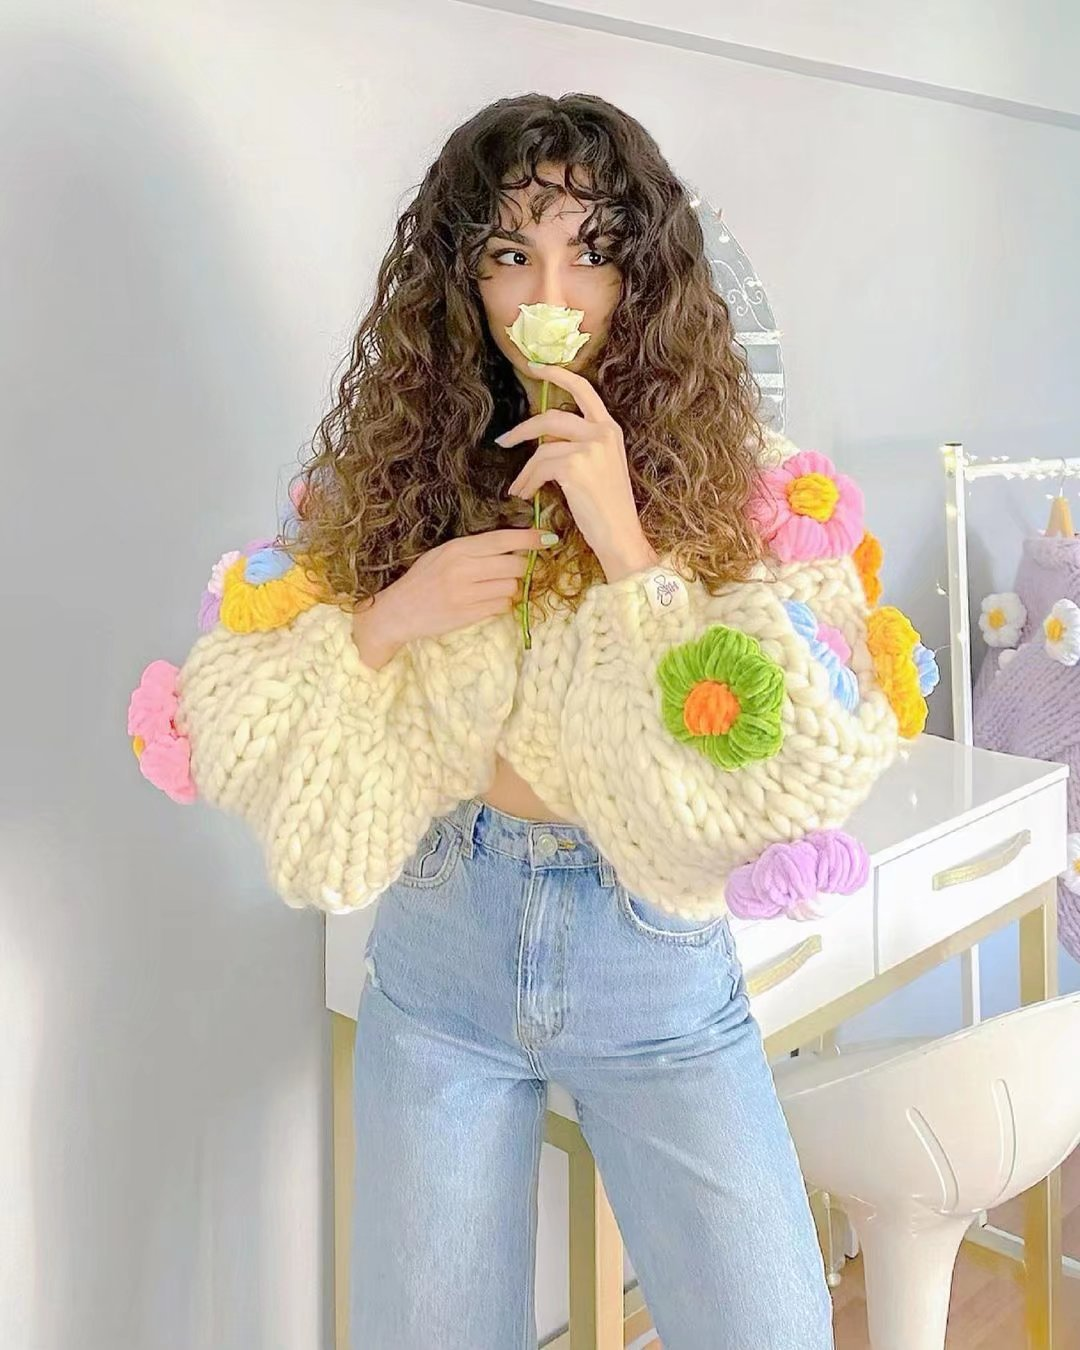 Floral White Cropped Sweater Winter Cute Girl Vintage Knit Kawaii Puff Sleeve Short Hollow Out Crop Top Sweaters Fall 2021 Women enlarge